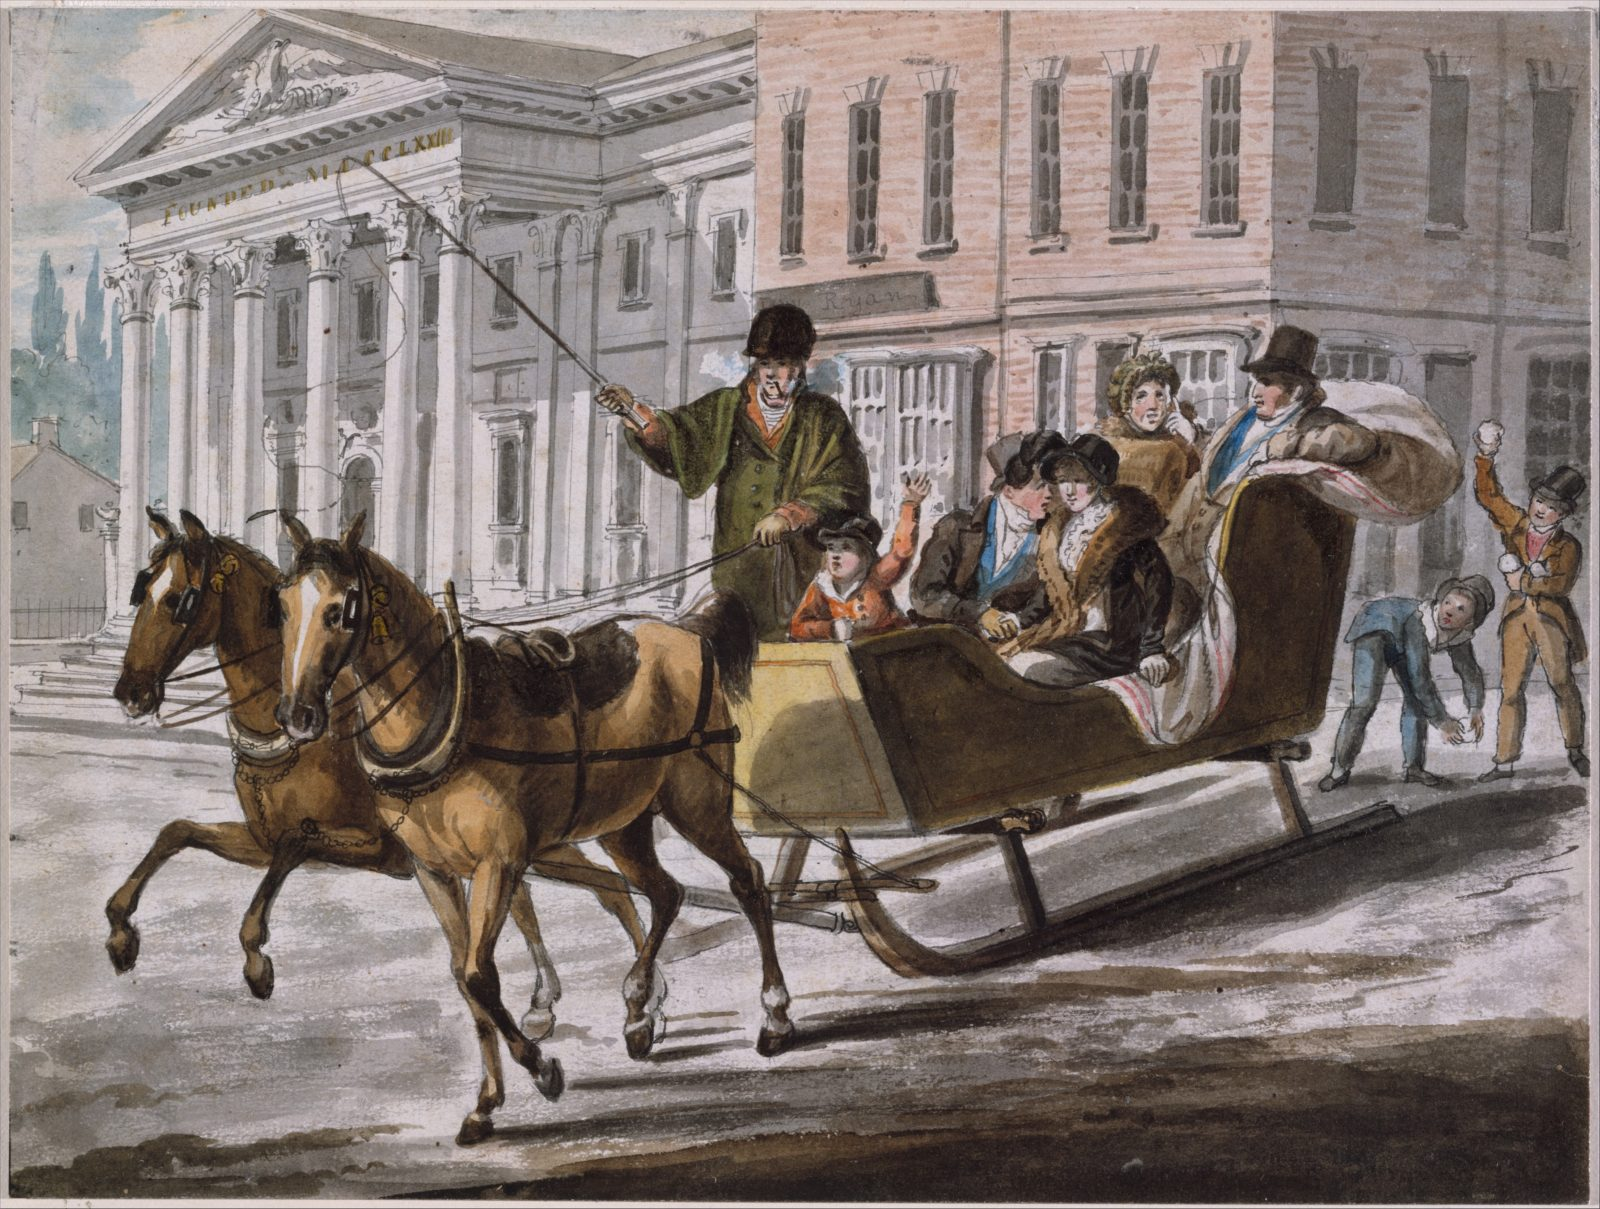 Winter Scene in Philadelphia—The Bank of the United States in the Background